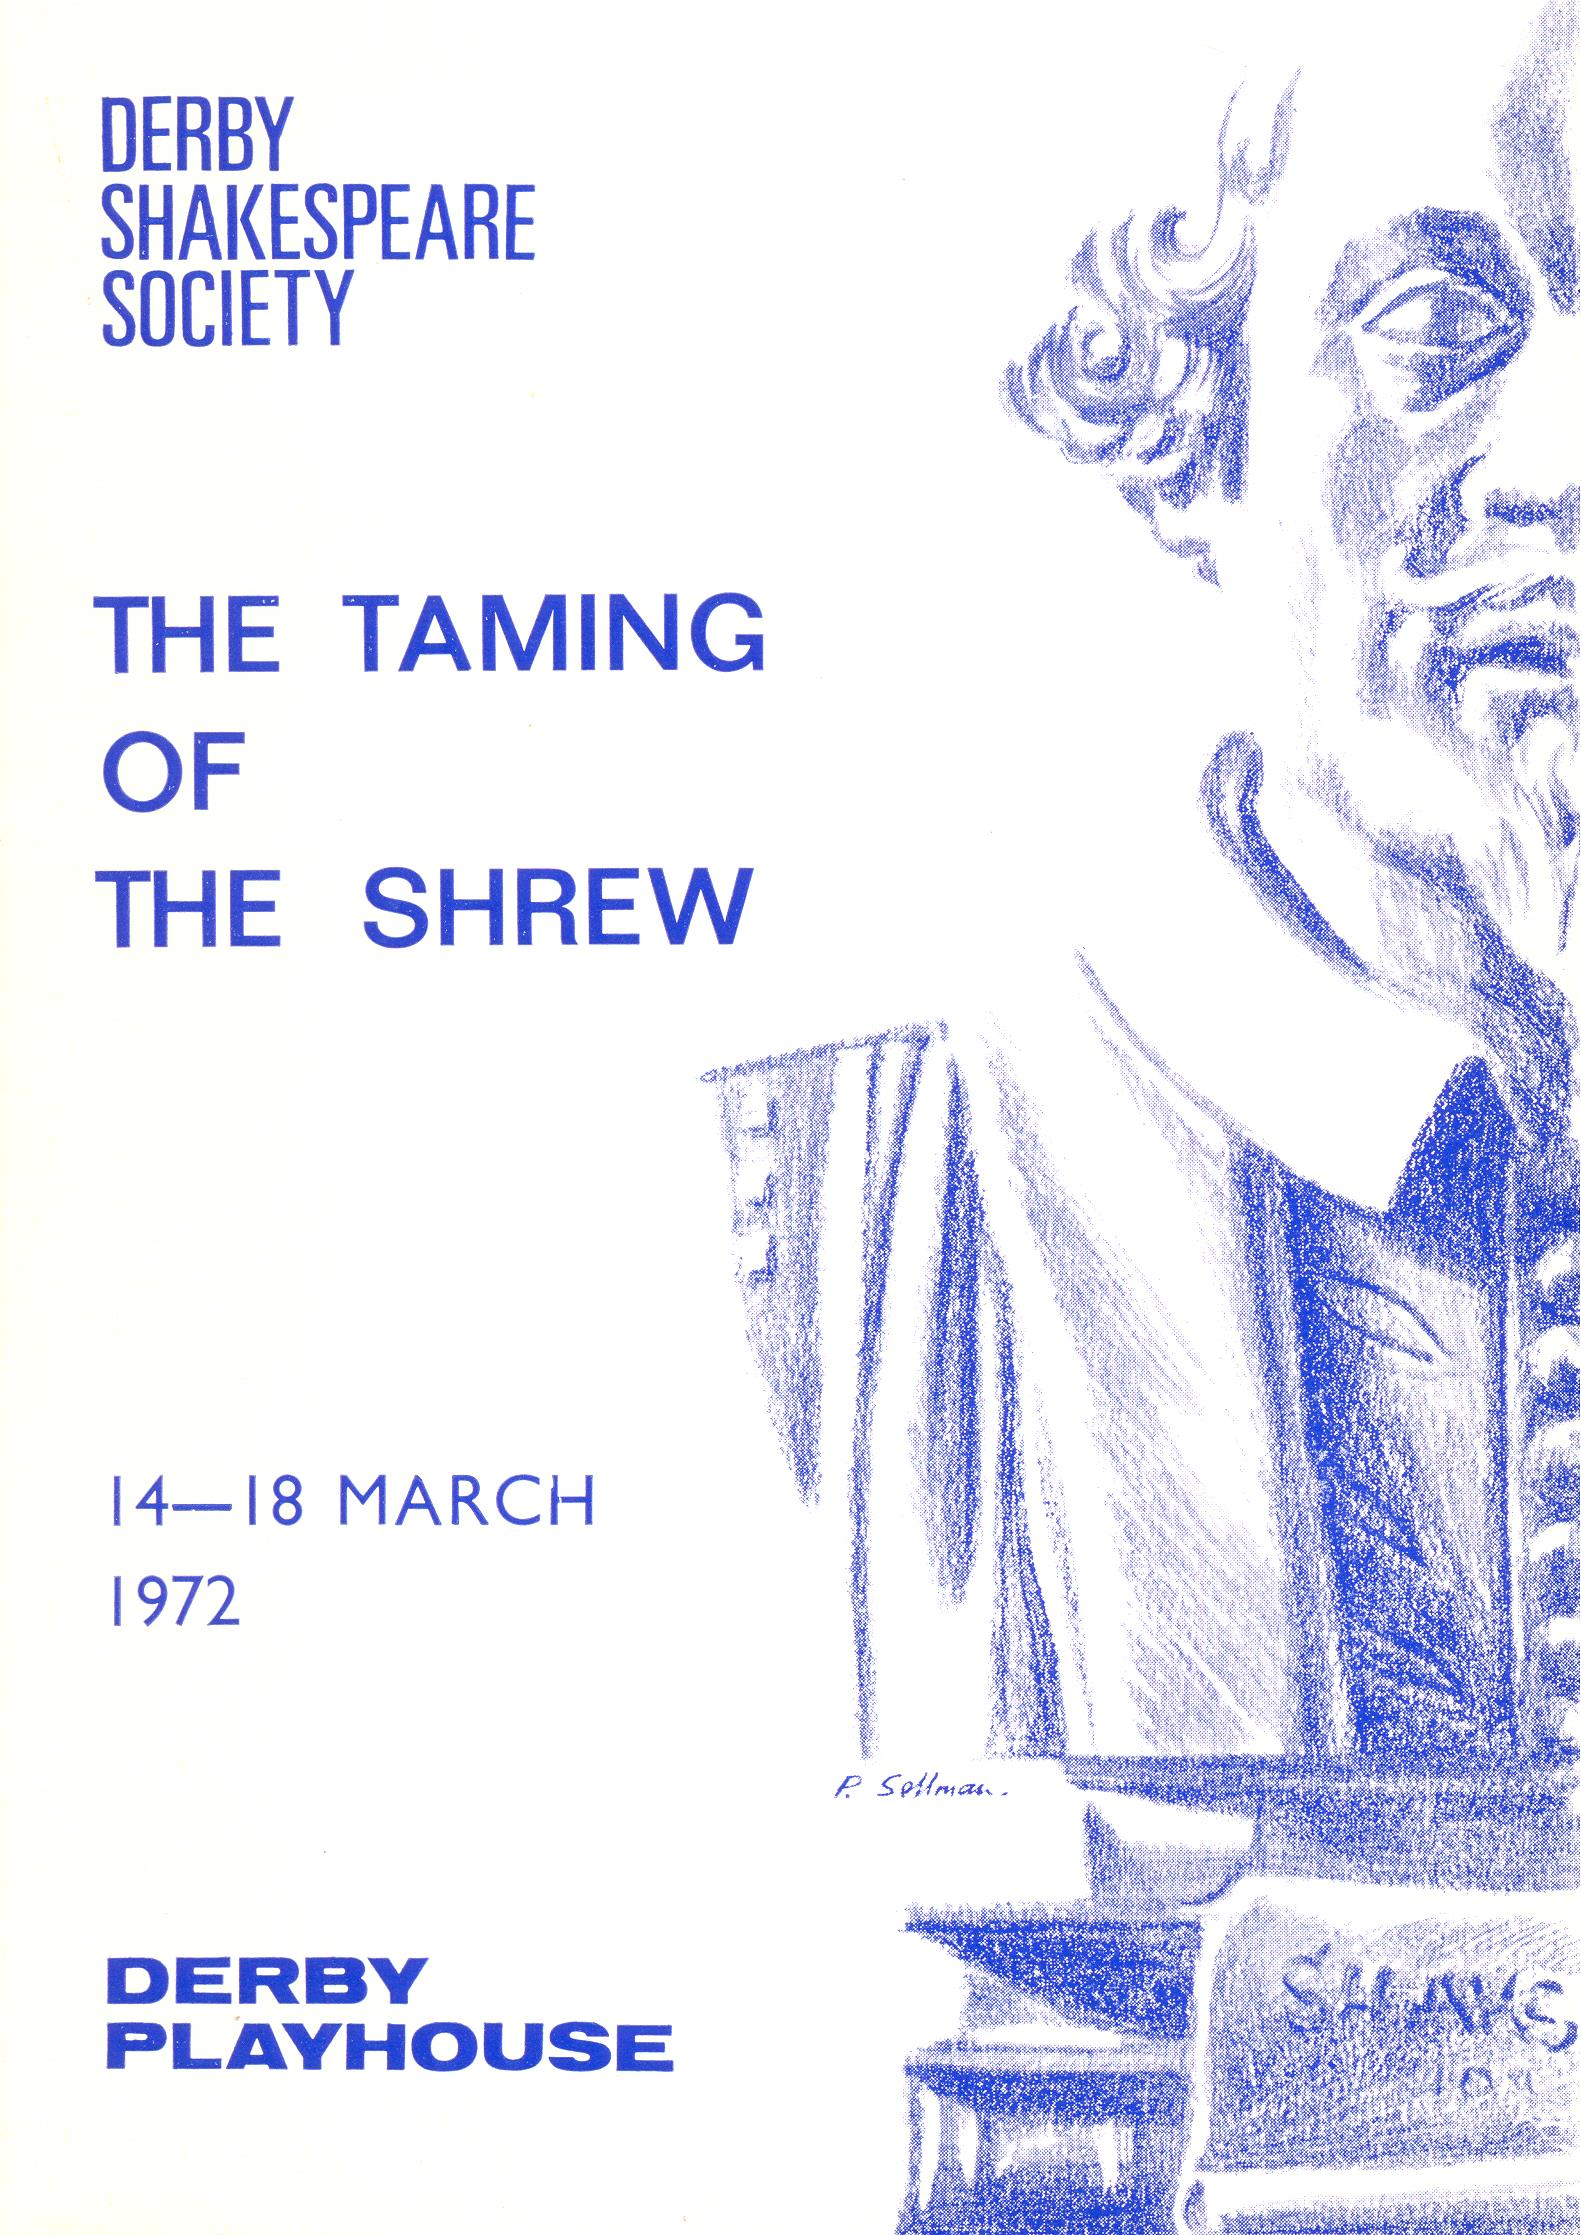 'The Taming Of The Shrew' 1972